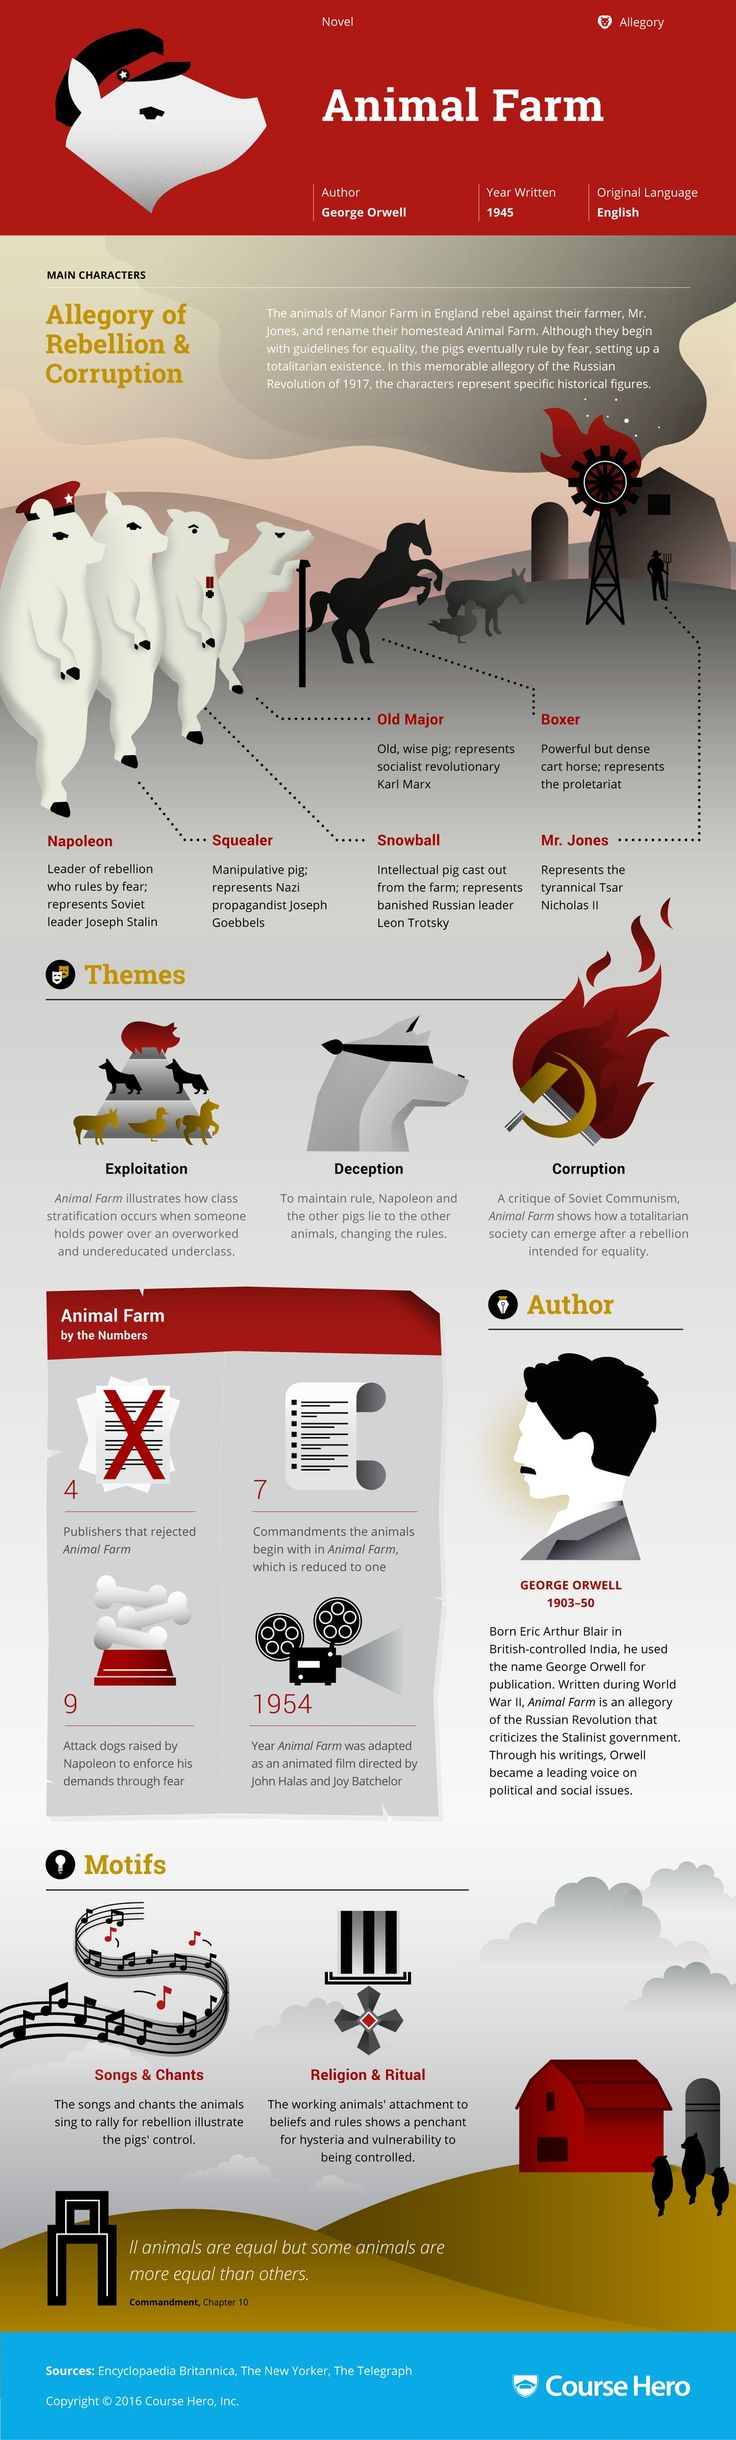 Animal Farm Infographic | Course Hero  || Ideas and inspiration for teaching GCSE English || www.gcse-english.com ||